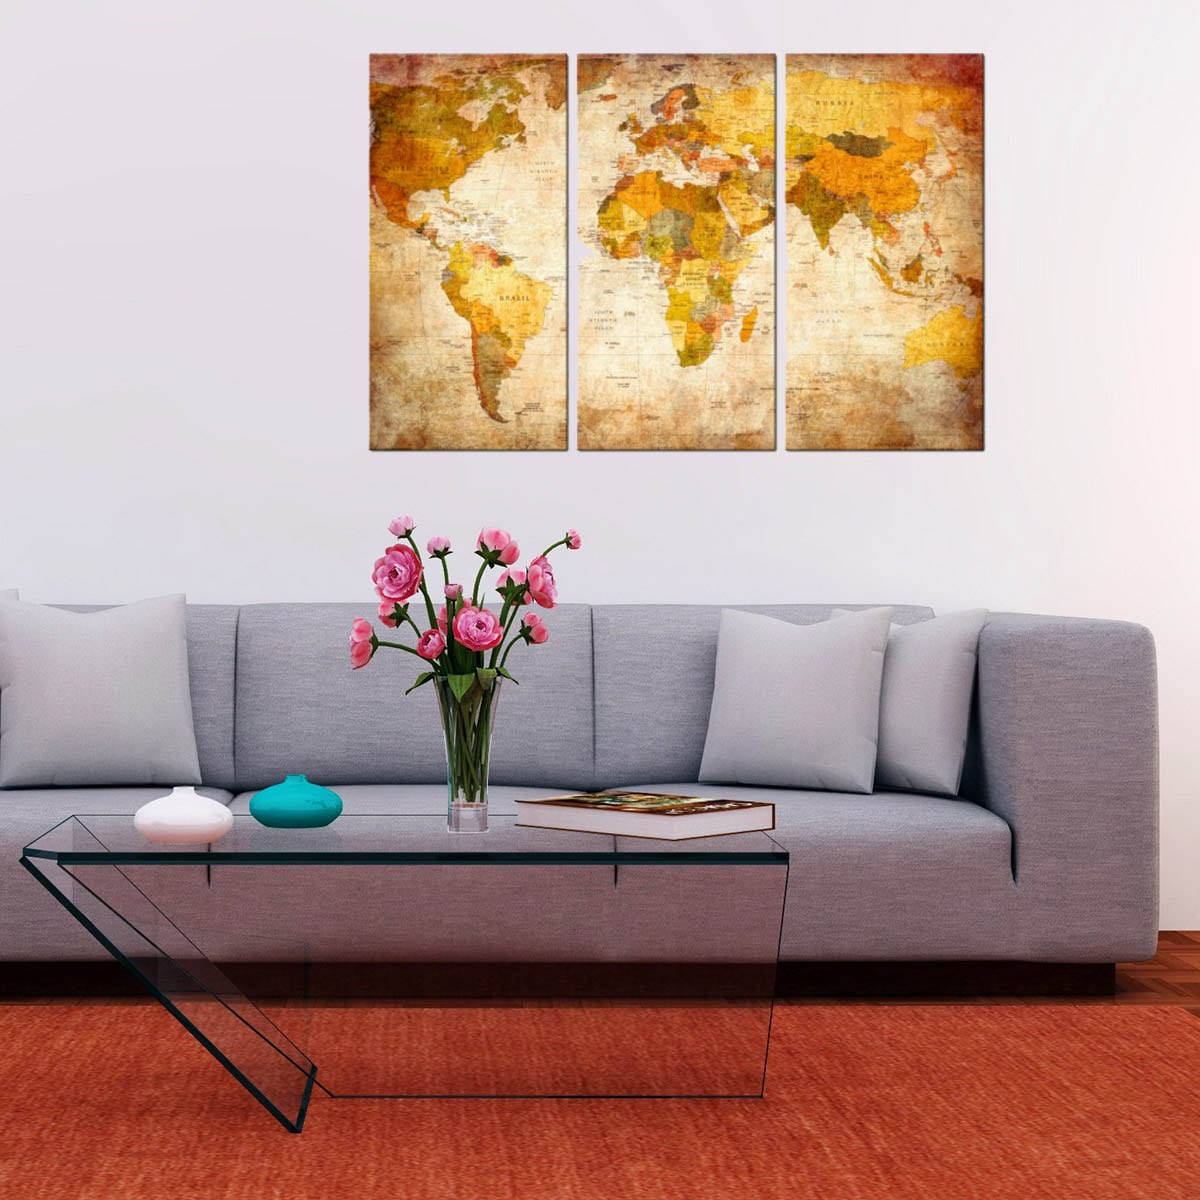 antique world map art print on canvas for a design wall decoration